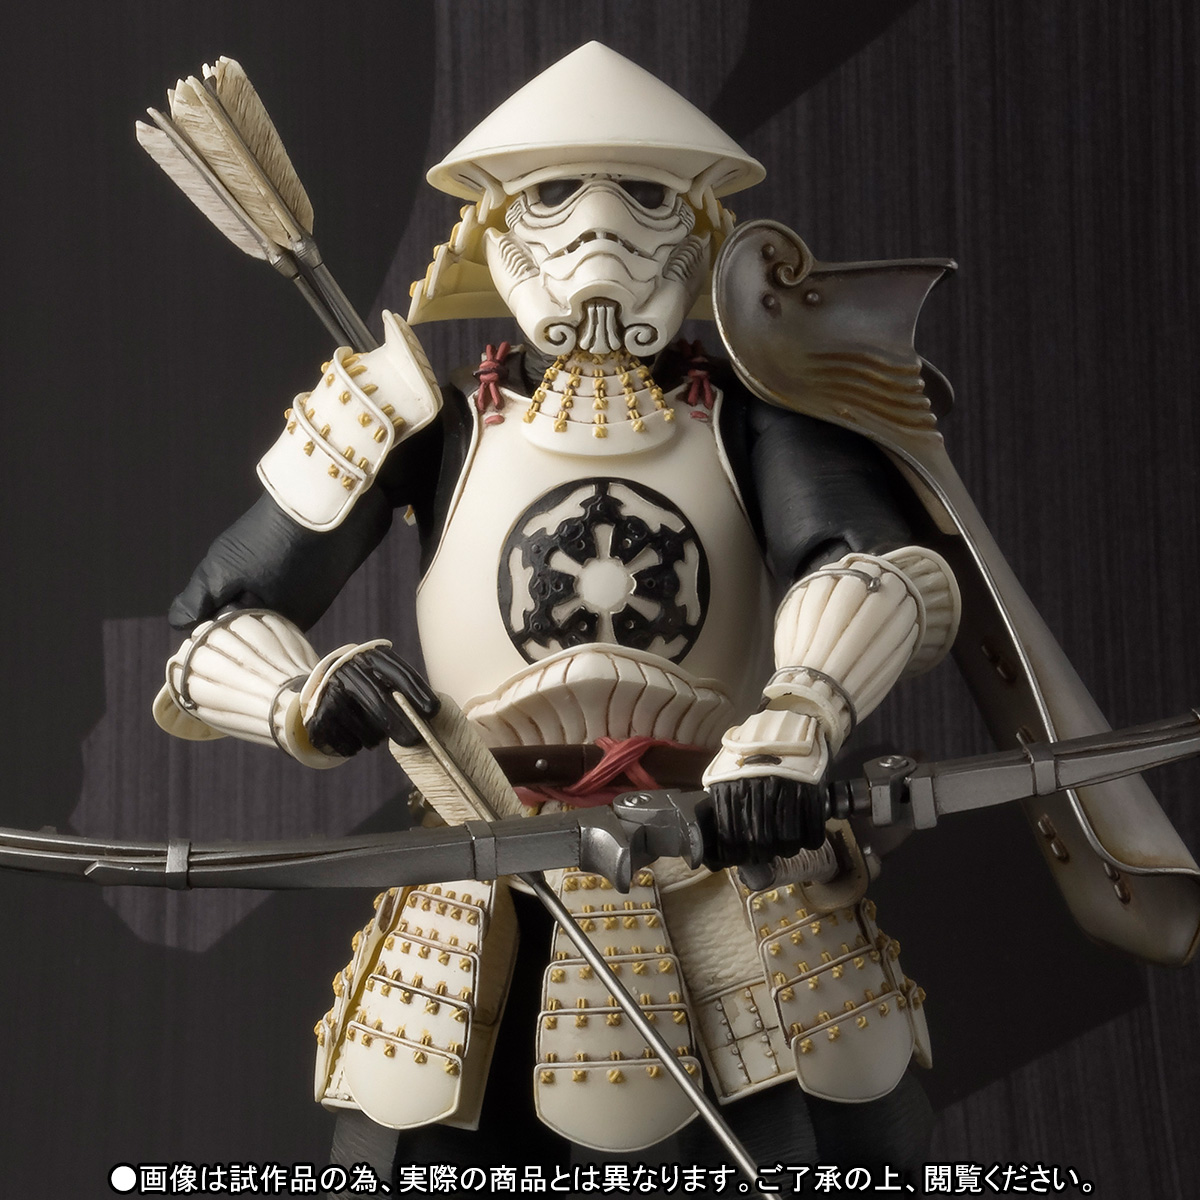 Star Wars - Stormtrooper - Meishou Movie Realization - Yumi Ashigaru (Limited Pre-order)